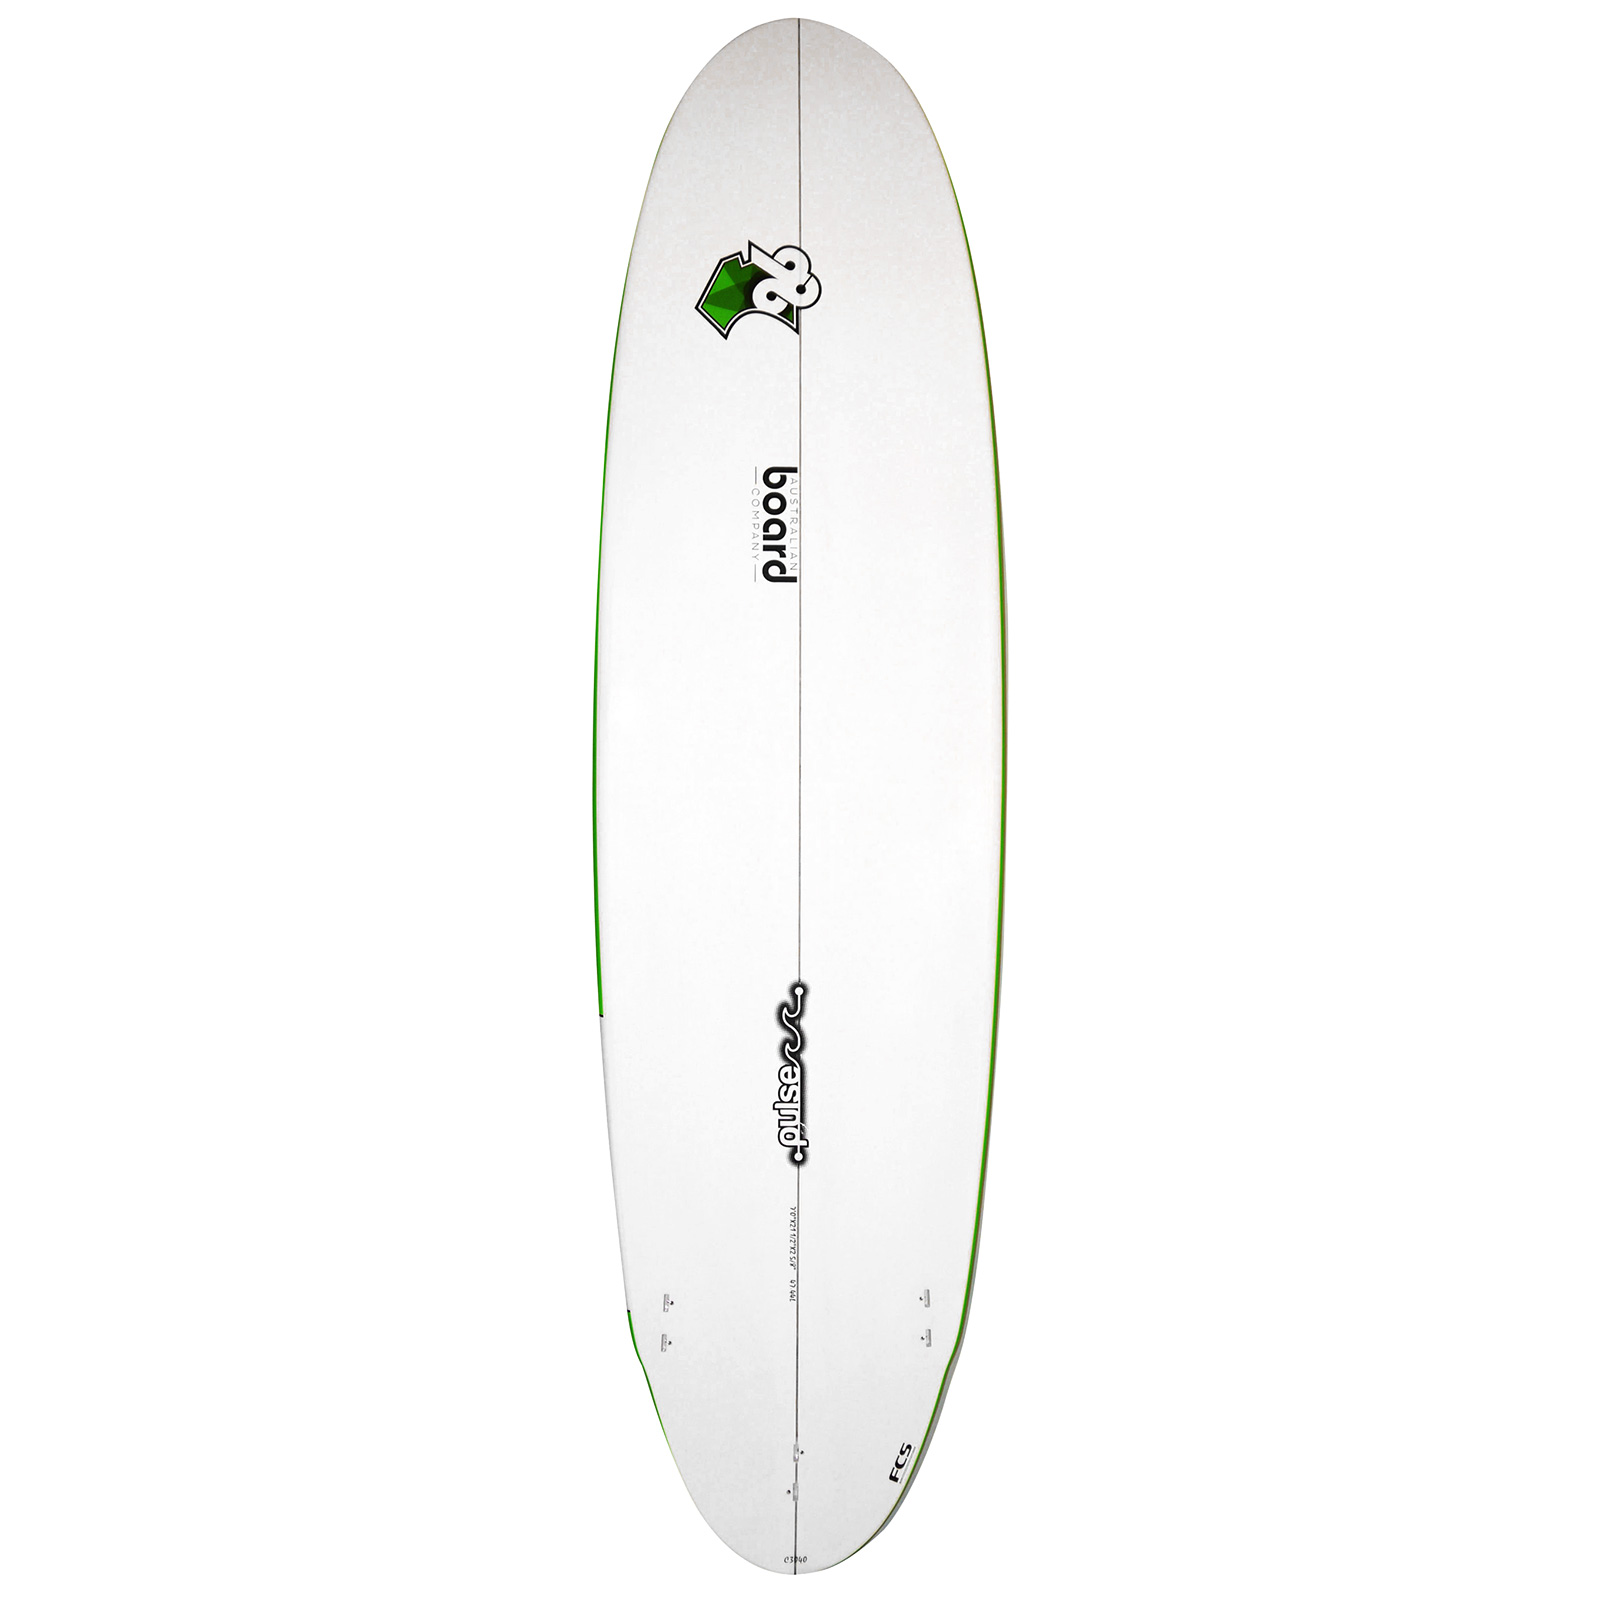 7ft Pulse Series Wing Round Tail Funboard Surfboard by Australian Board Company (ABC) - Matt Finish